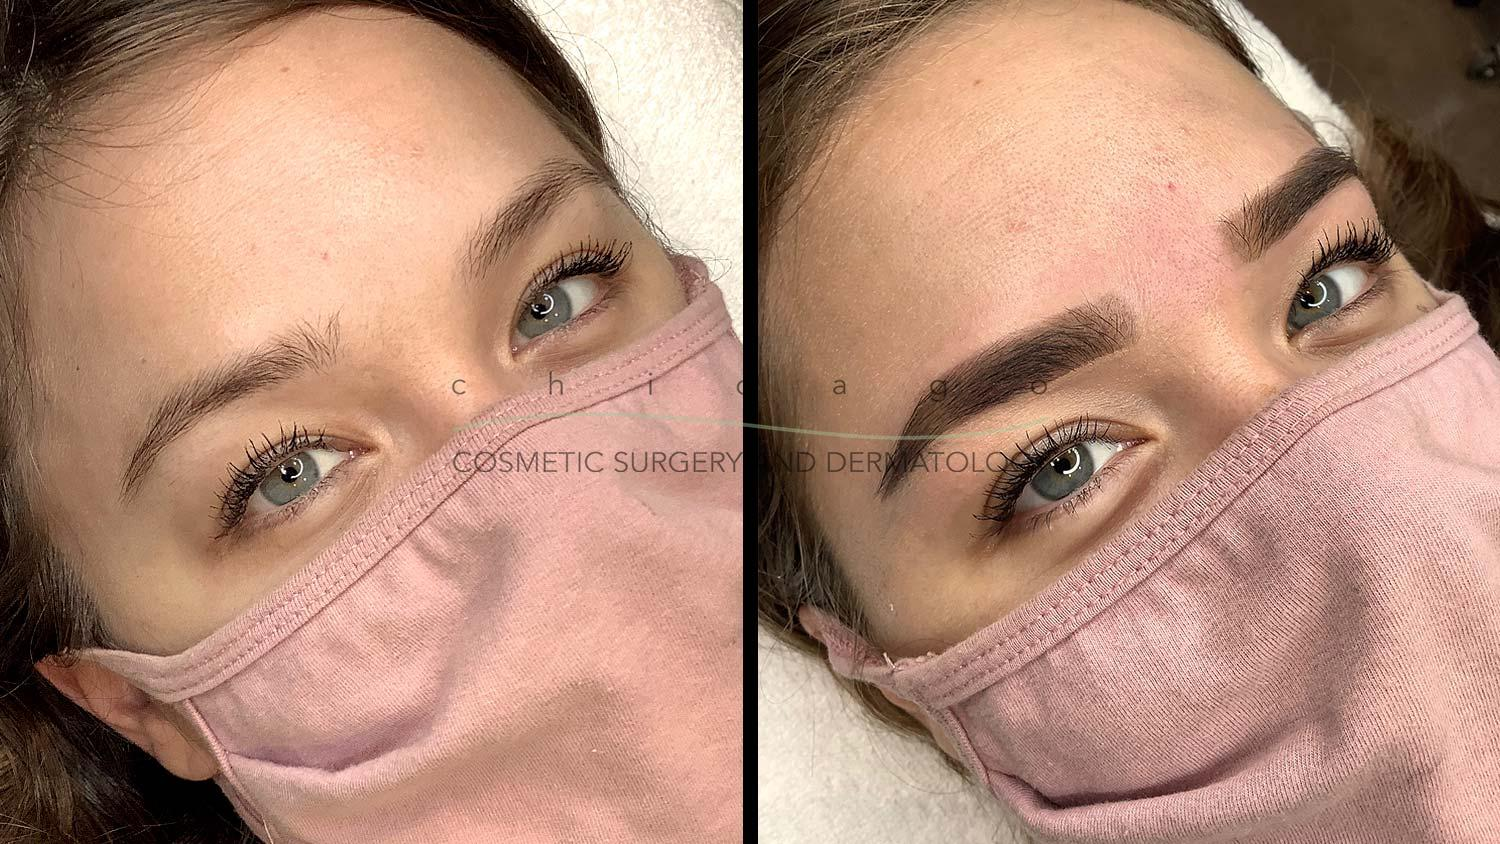 Eyebrow wax and tint before and after